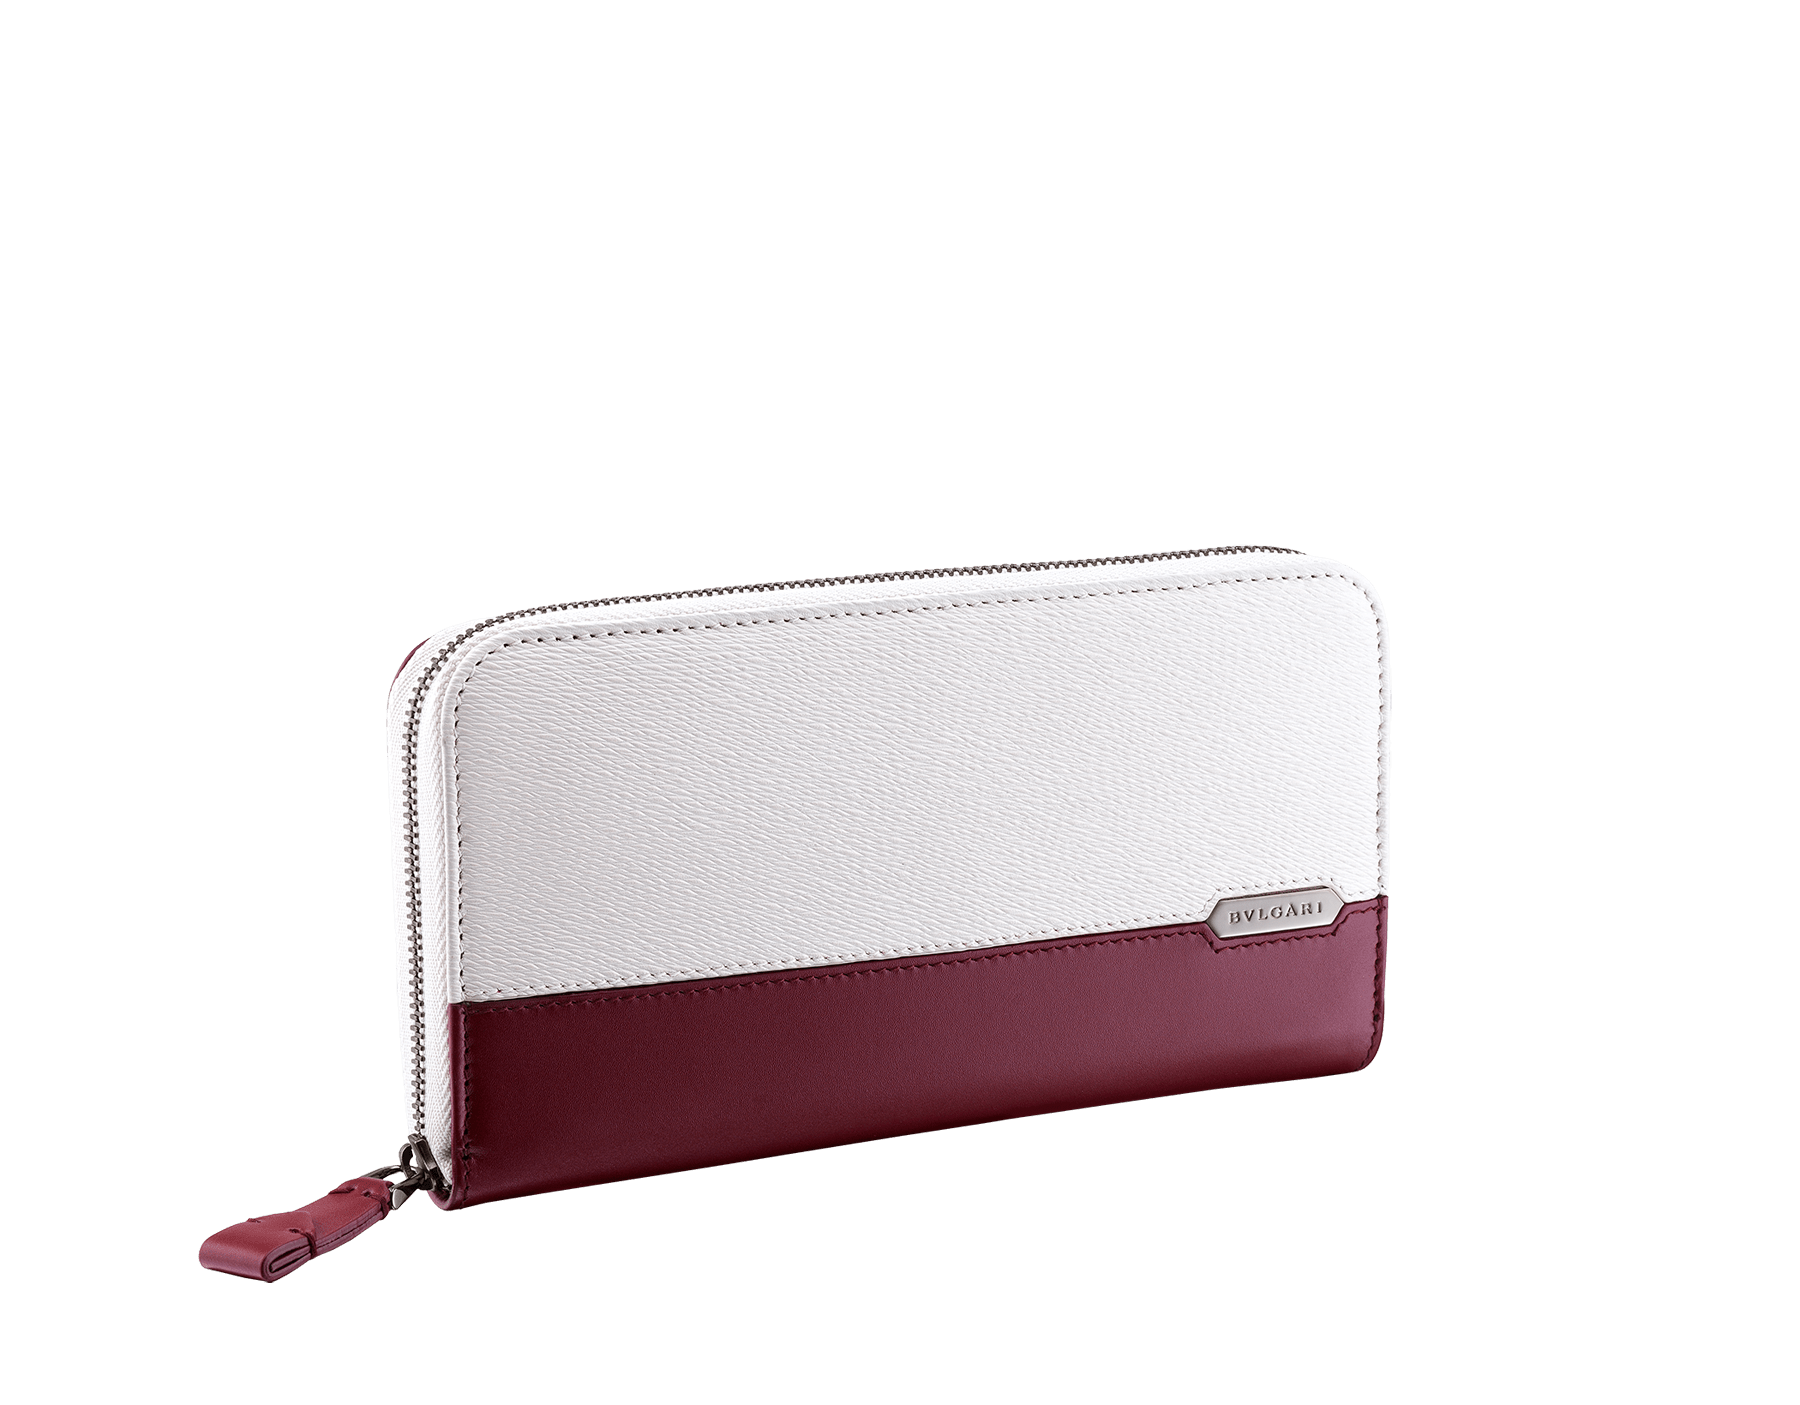 Serpenti Scaglie men's zipped wallet in white agate grazed calf leather and roman garnet calf leather. Bvlgari logo engraved on the hexagonal scaglie metal plate finished in dark ruthenium. 288344 image 1